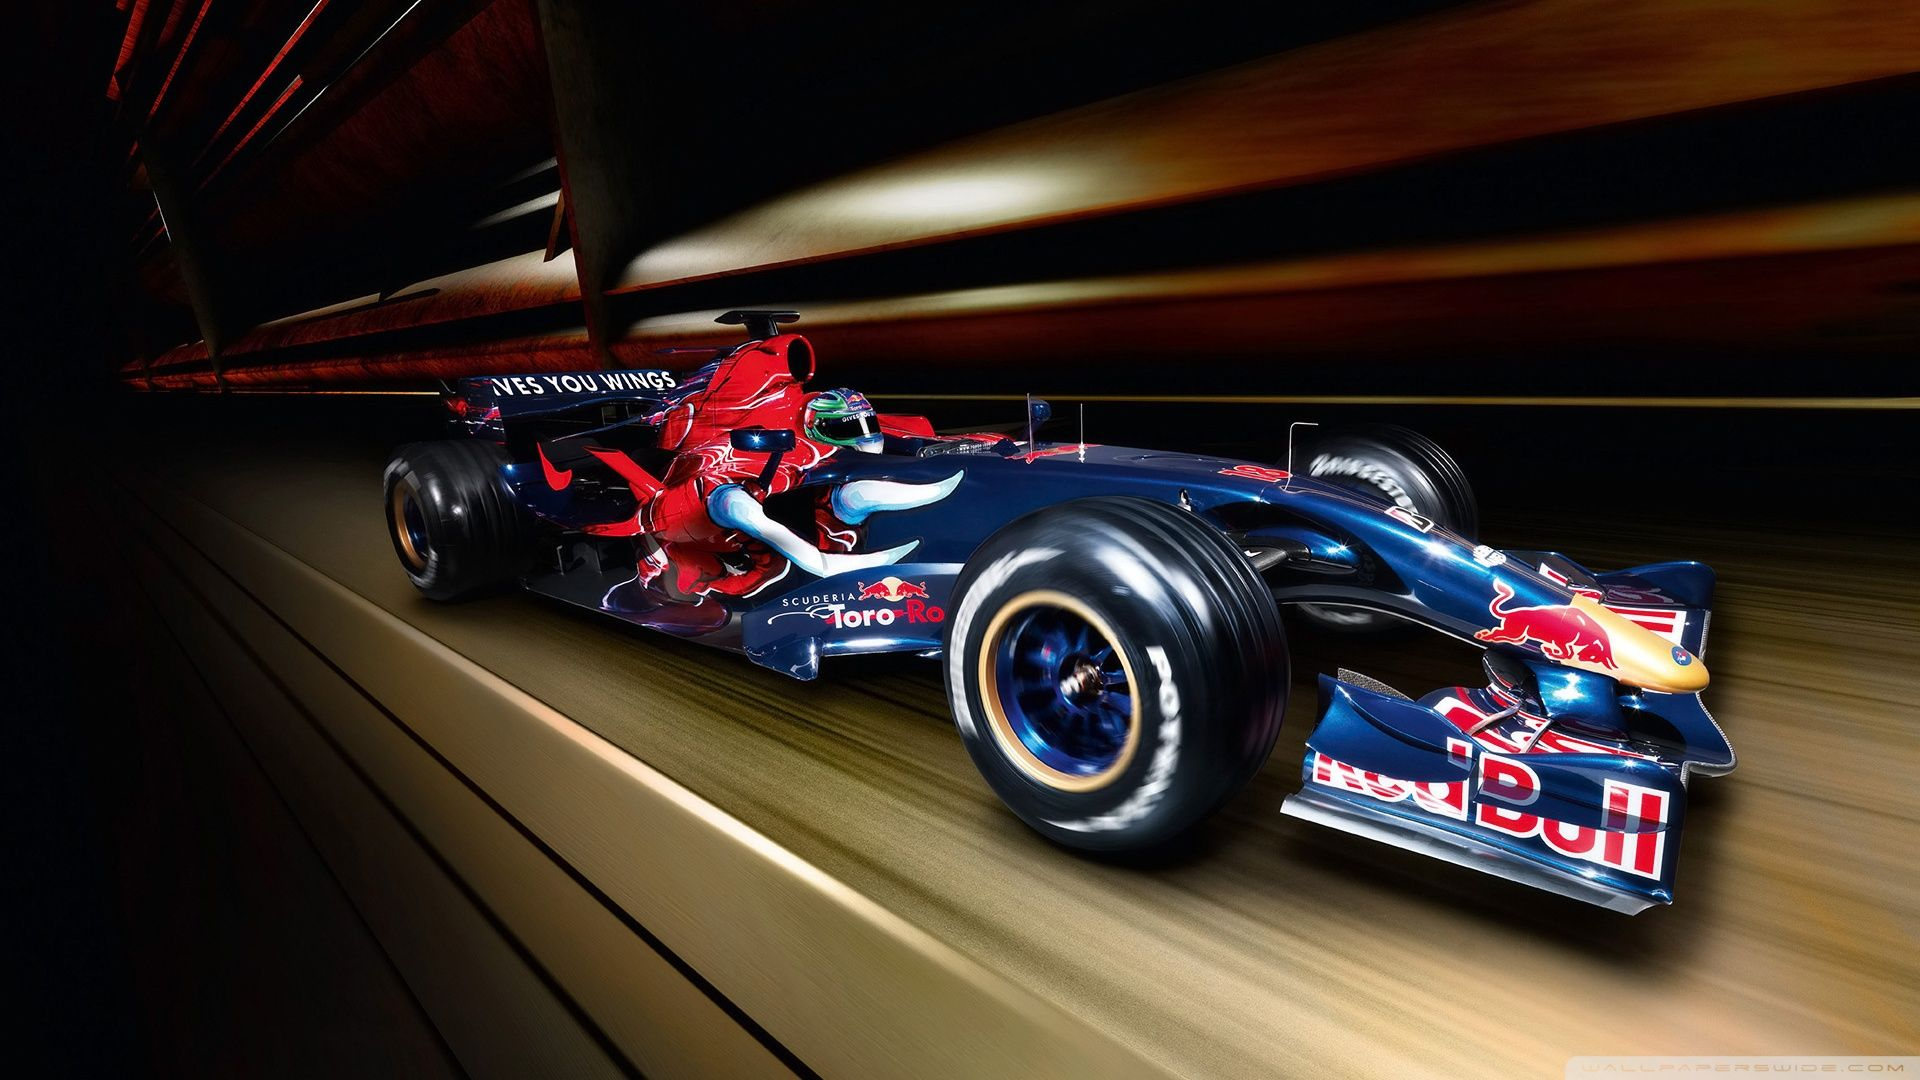 F1 Hd Formula 1 Wallpaper Racing Red Bull F1 Car